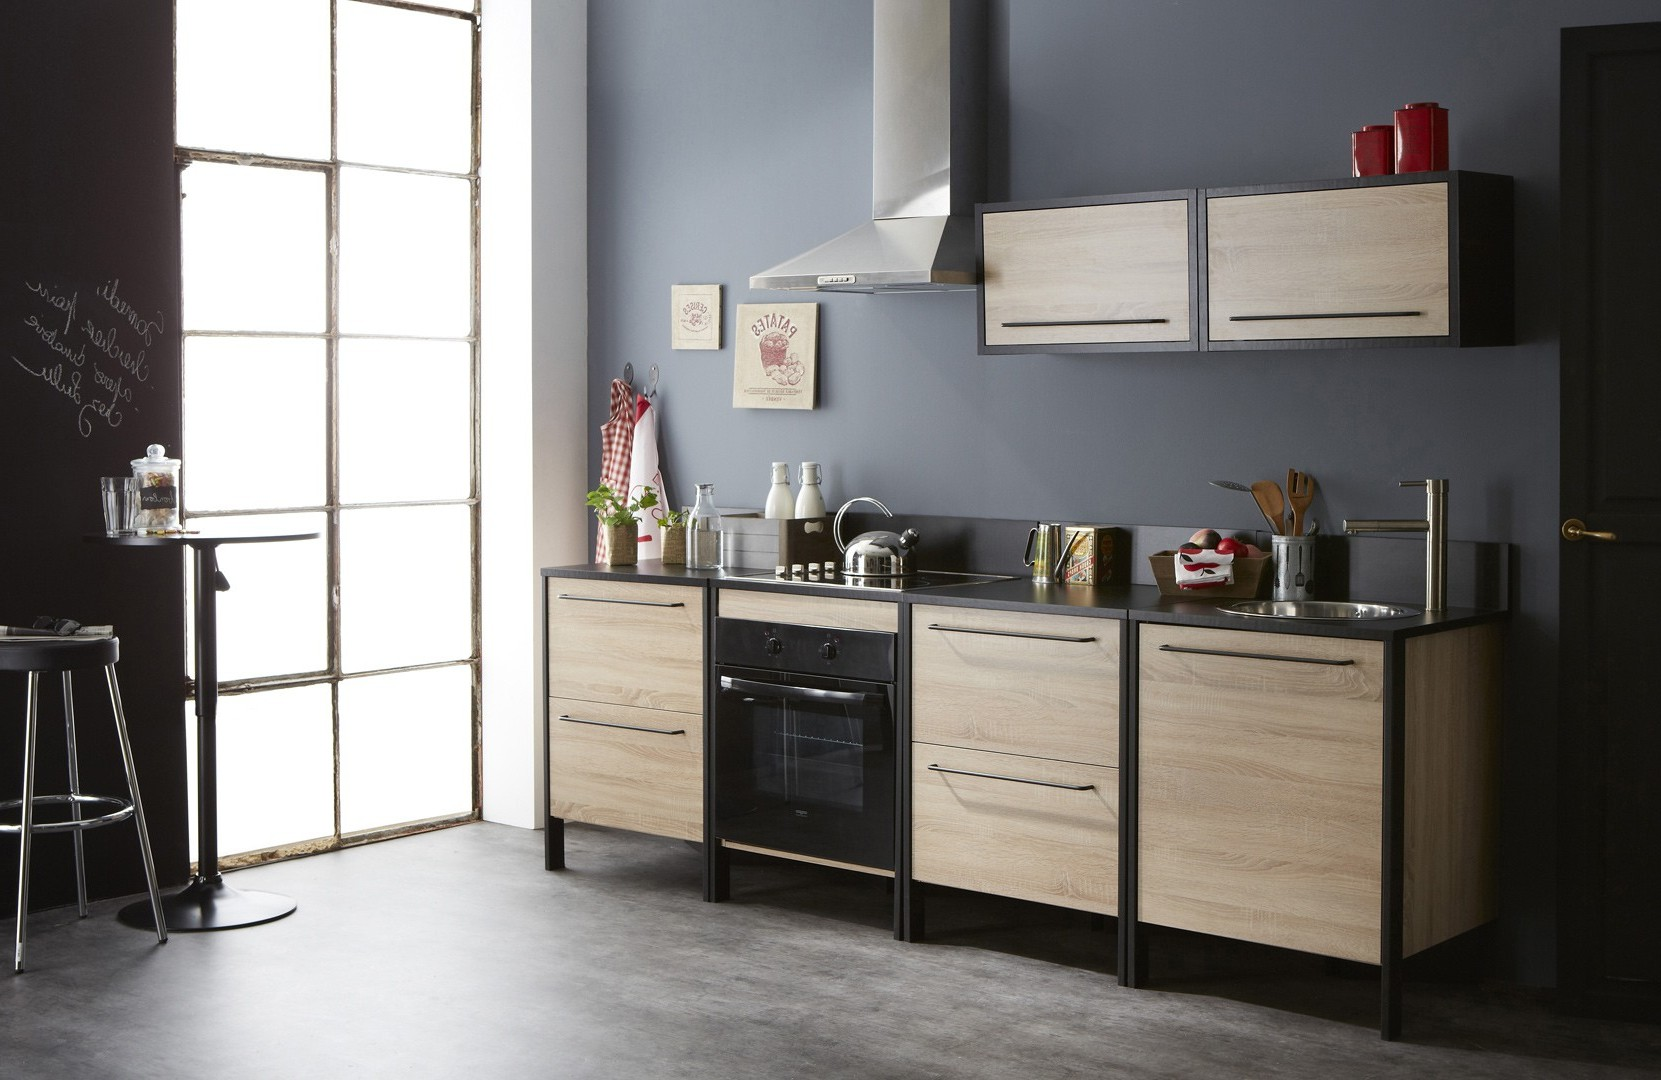 meubles de cuisine en pin brut cuisine id es de. Black Bedroom Furniture Sets. Home Design Ideas